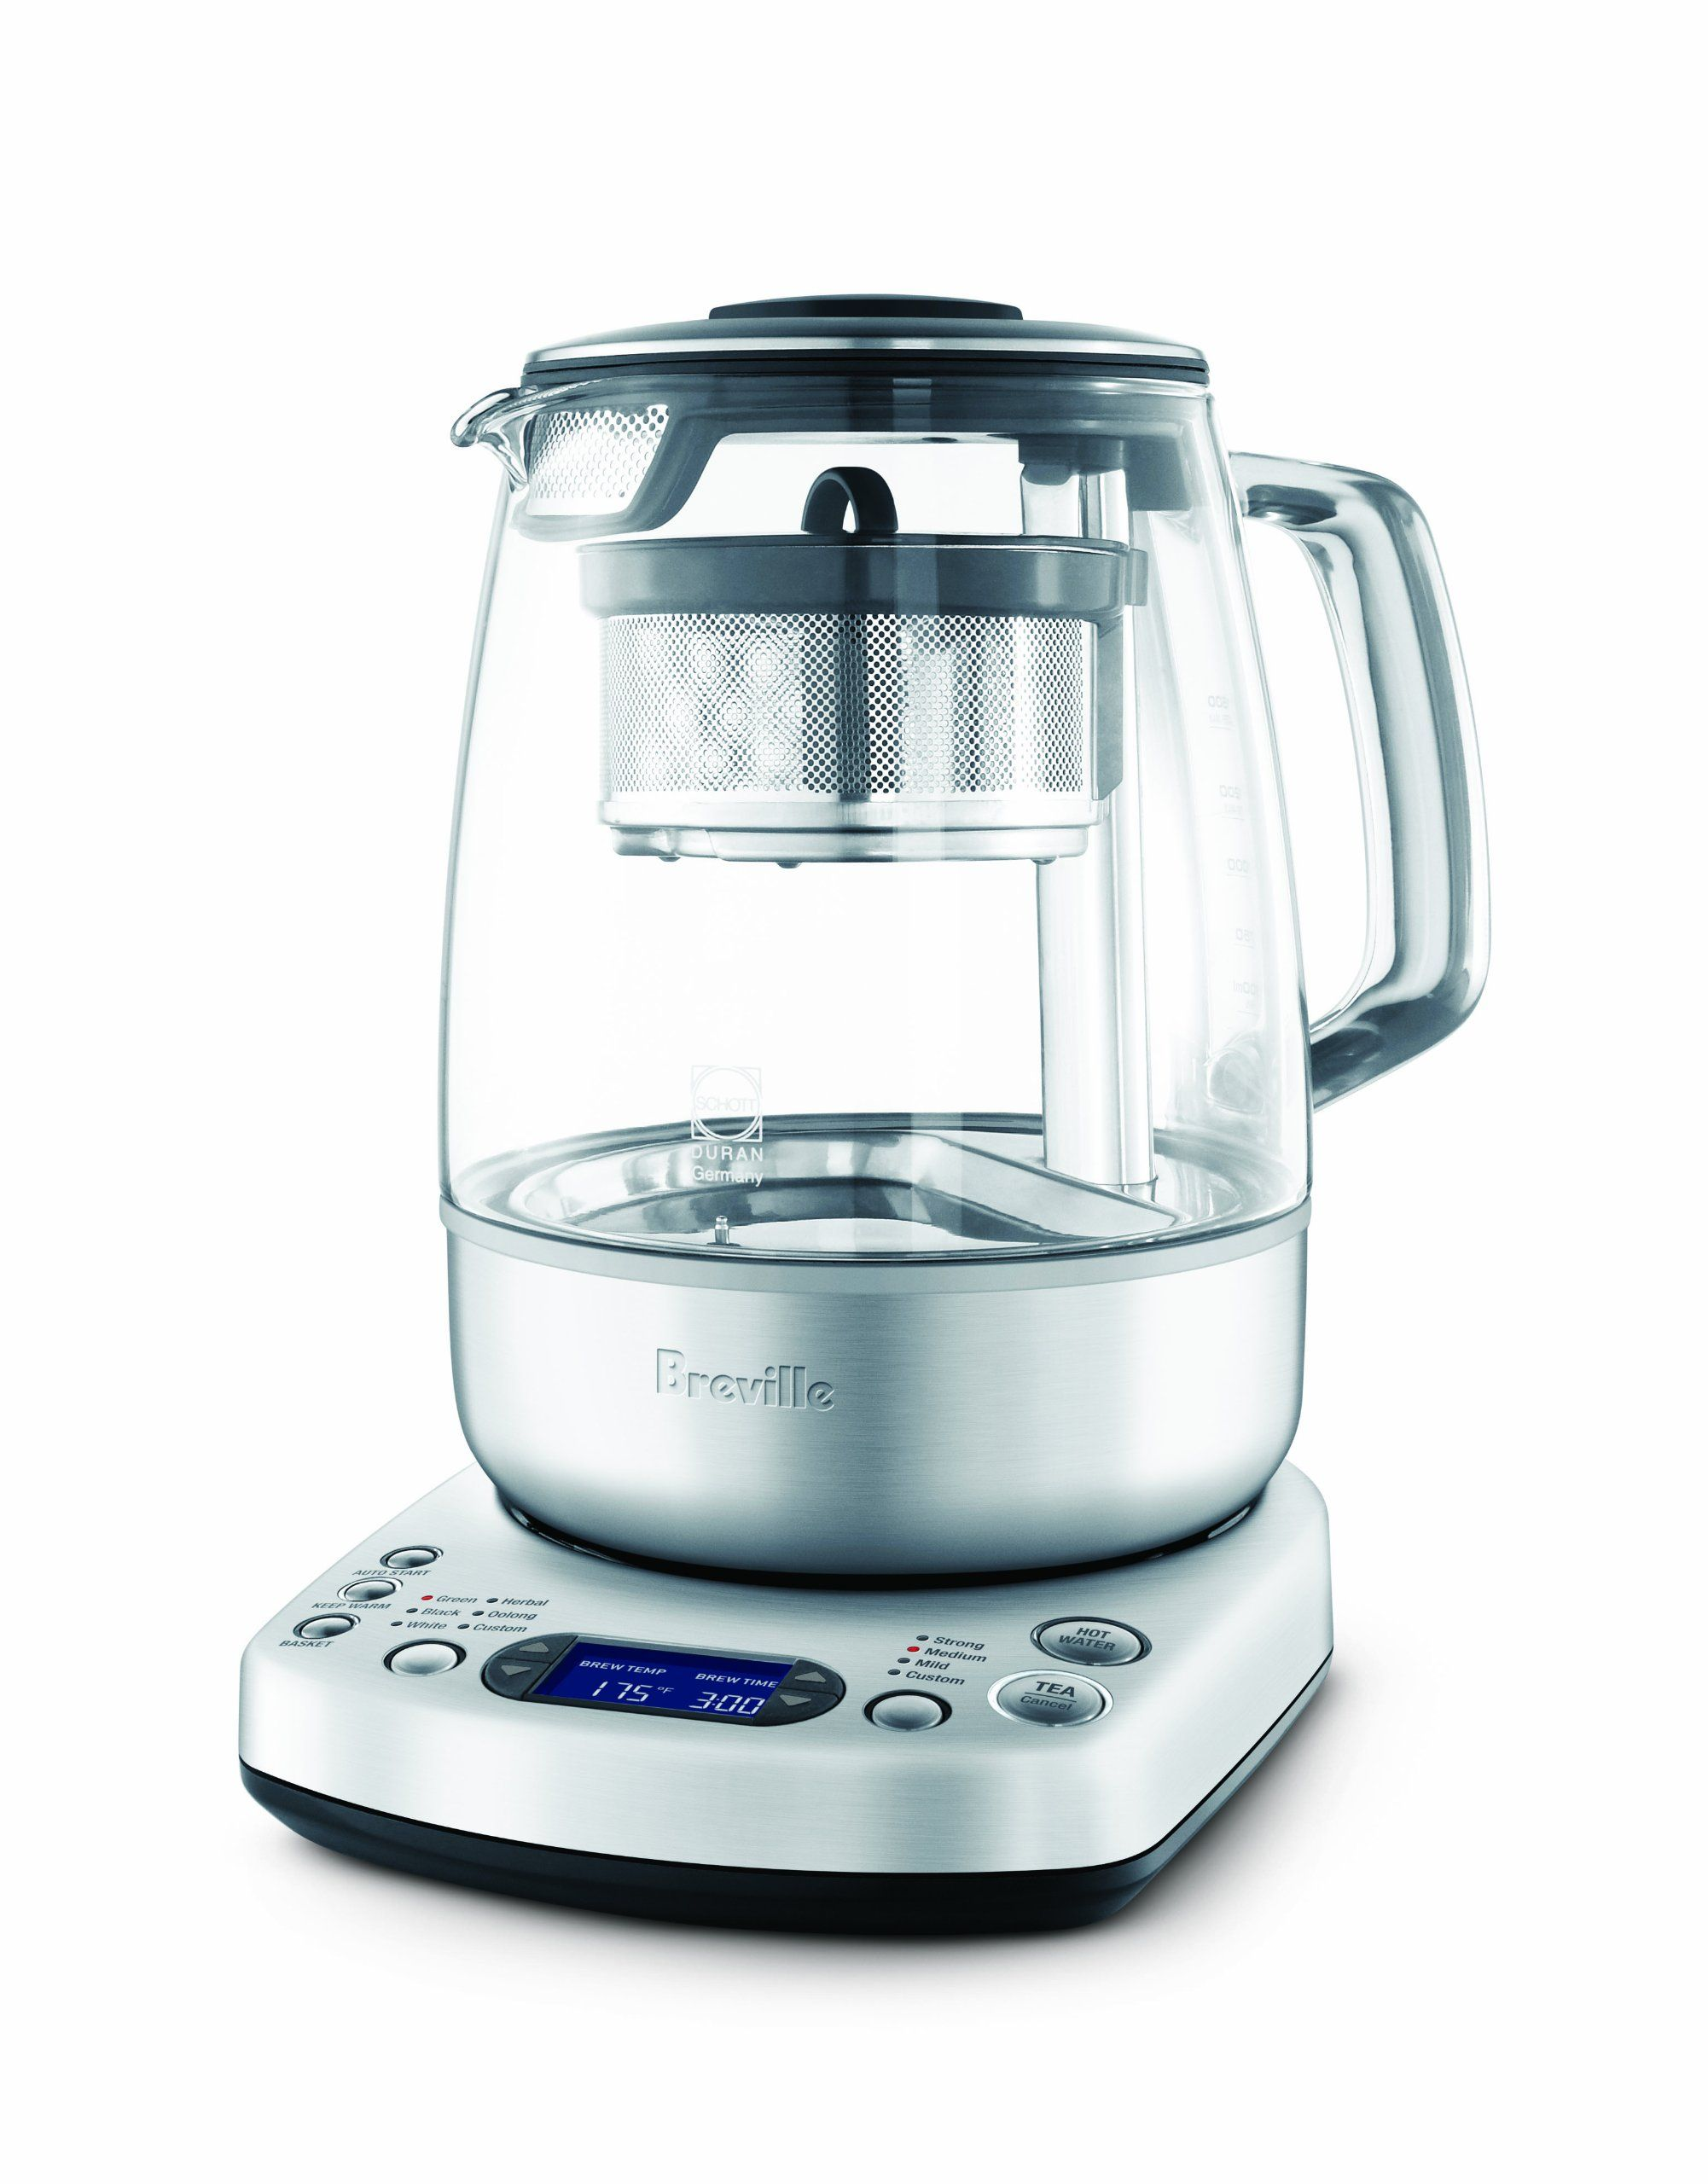 Great Tea Breawer For A Tea Cafe Breville Btm800xl One Touch Tea